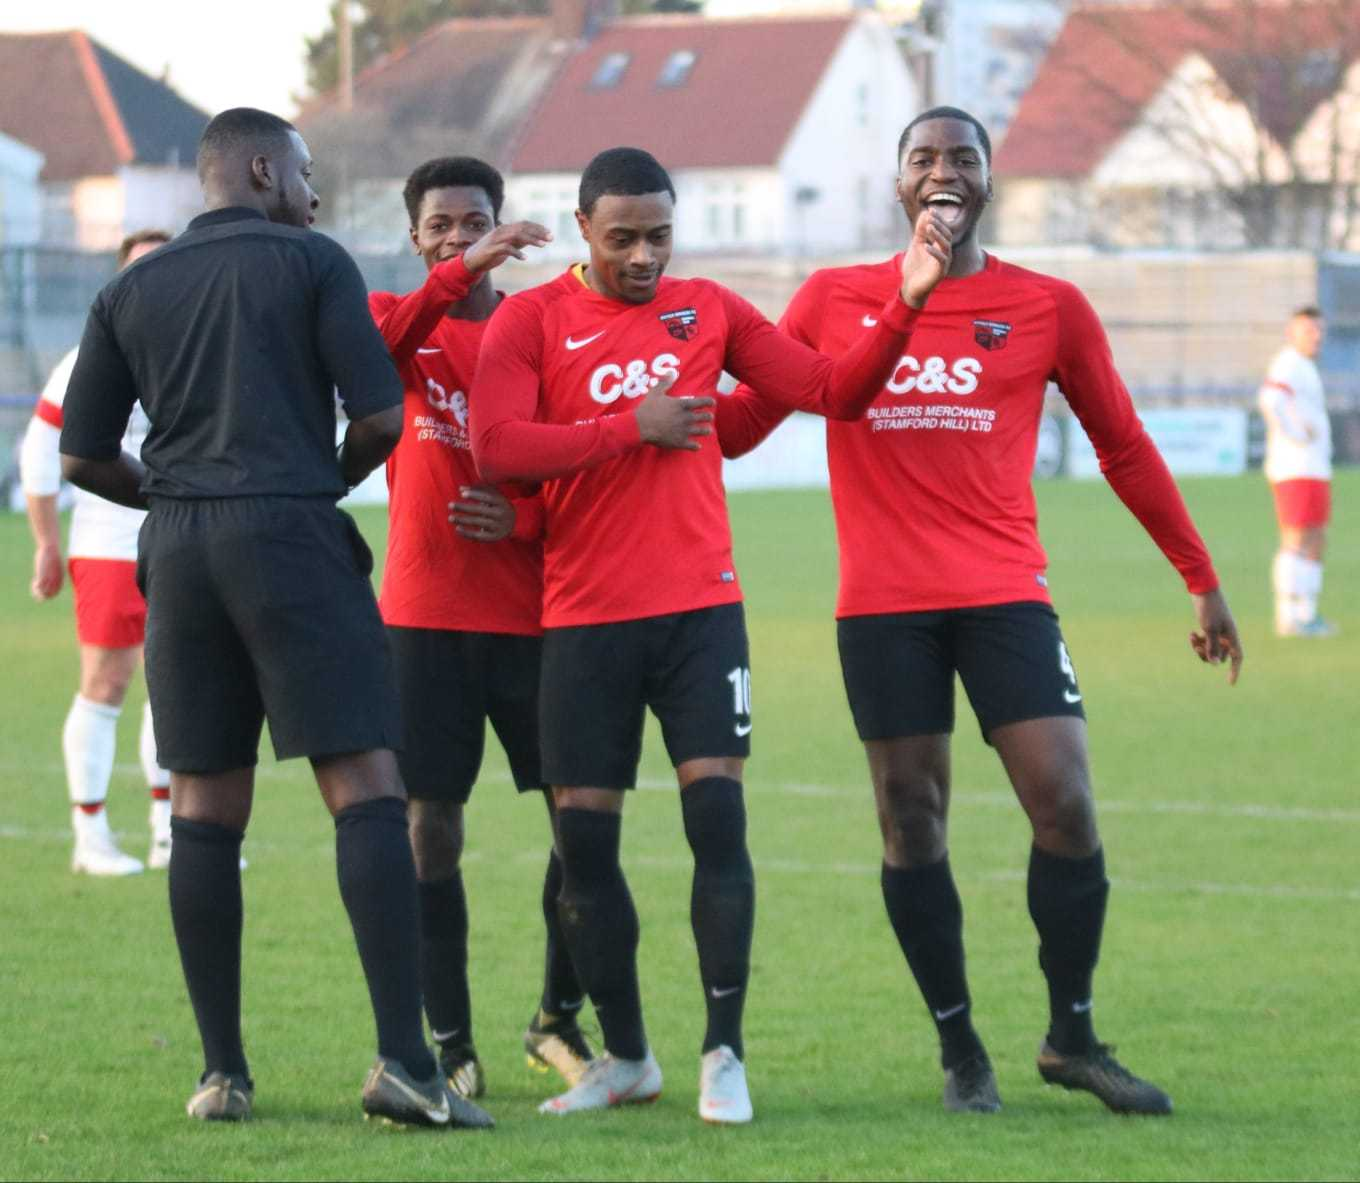 Borough were back among the goals on Saturday. Picture: Ayana Images